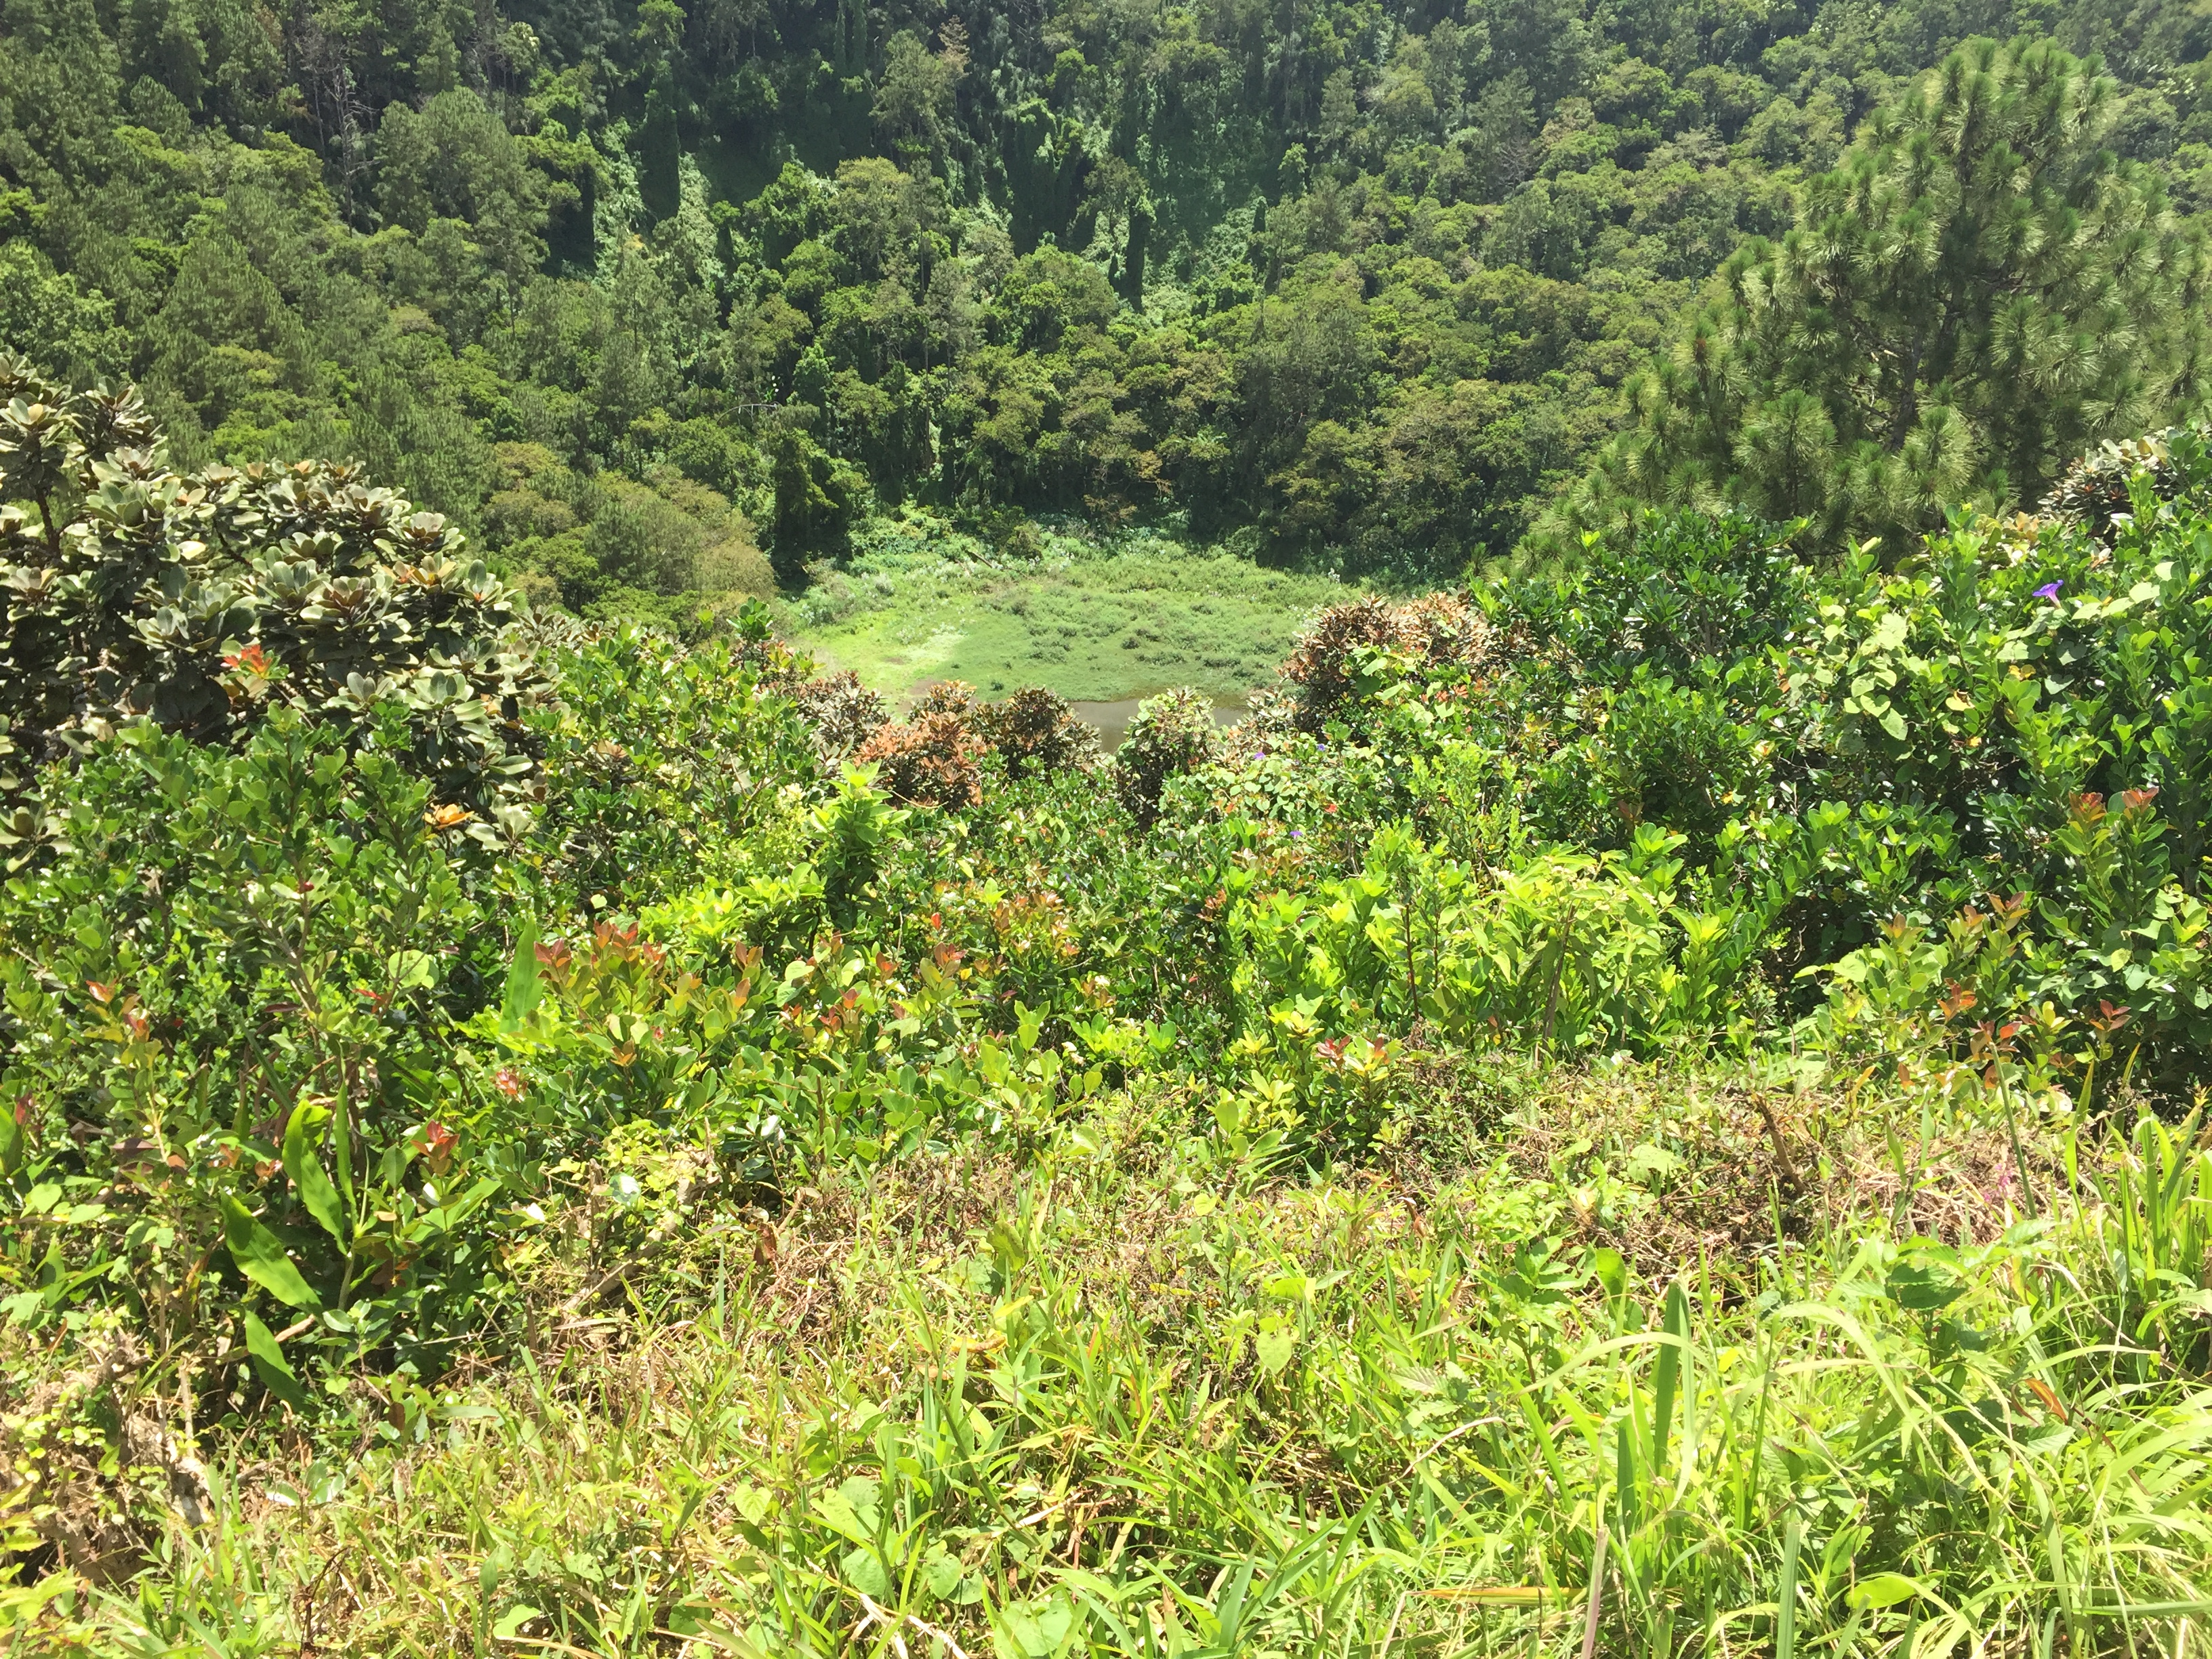 trou aux cerfs mauritius volcano volcanic crater covered in trees and other greenery in a lush tropical island setting